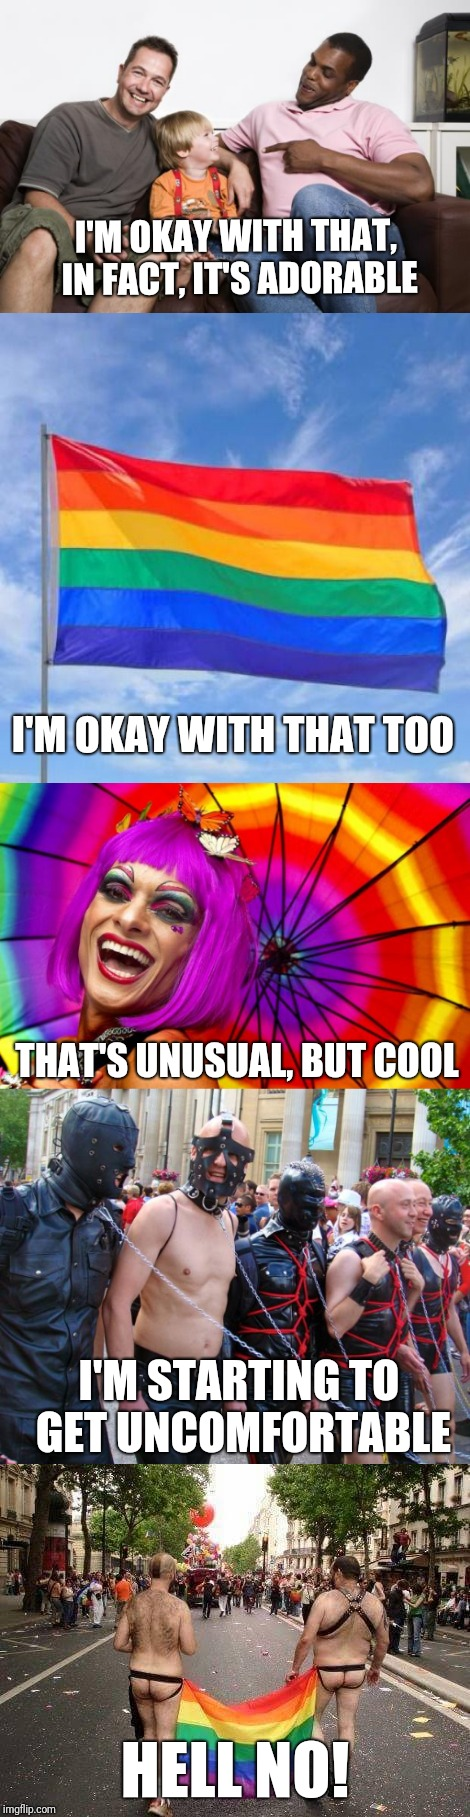 "I think this is what most people mean when they say ""keep it in the bedroom"" 